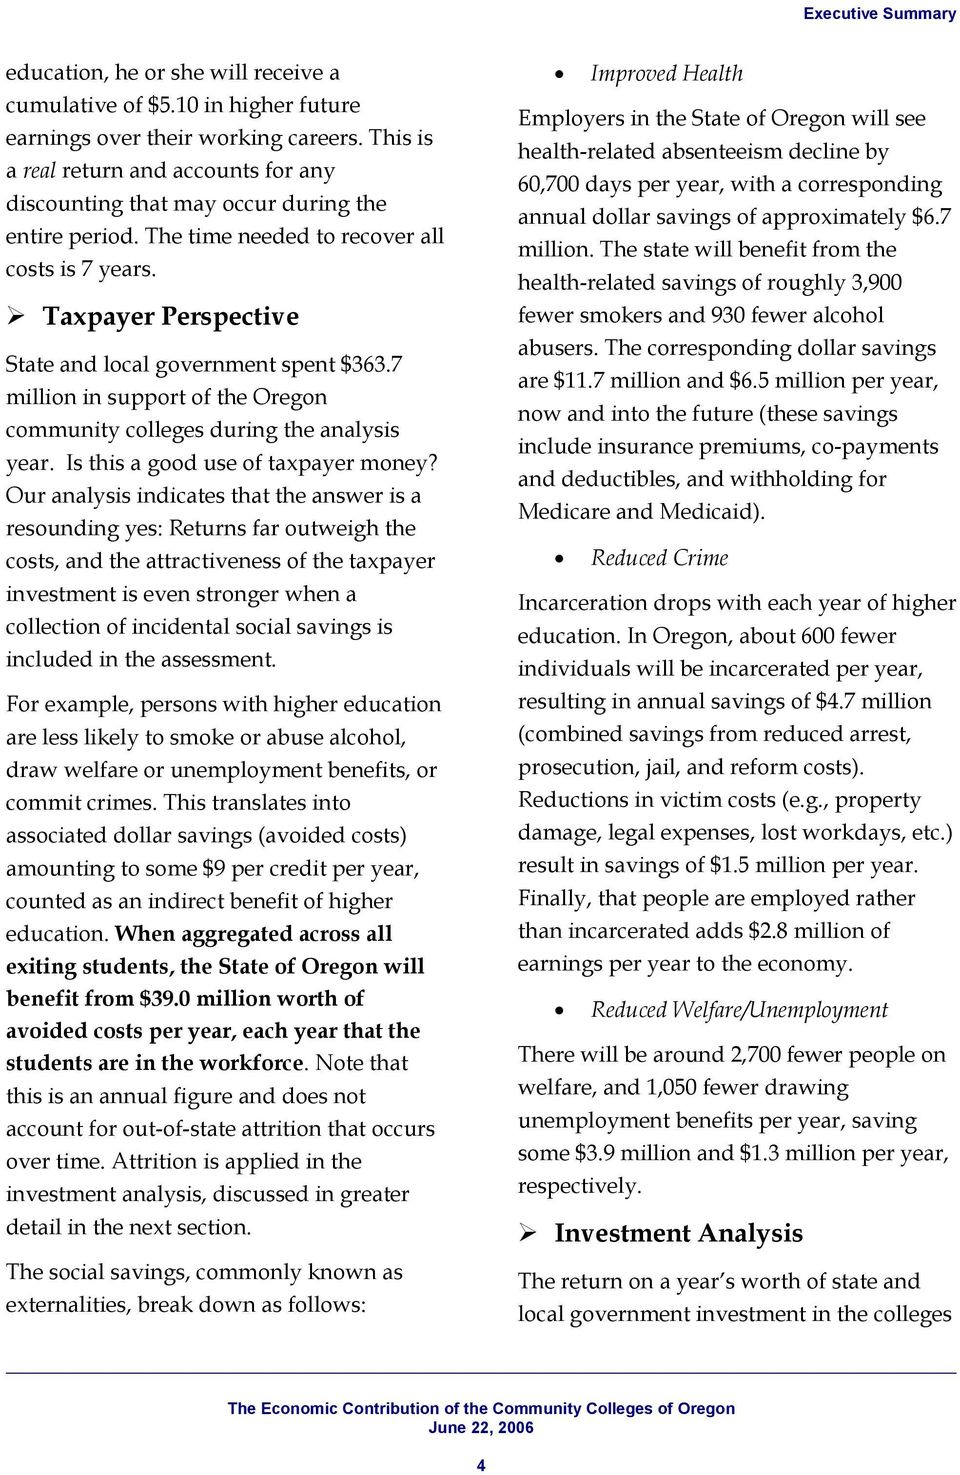 Taxpayer Perspective State and local government spent $363.7 million in support of the Oregon community colleges during the analysis year. Is this a good use of taxpayer money?